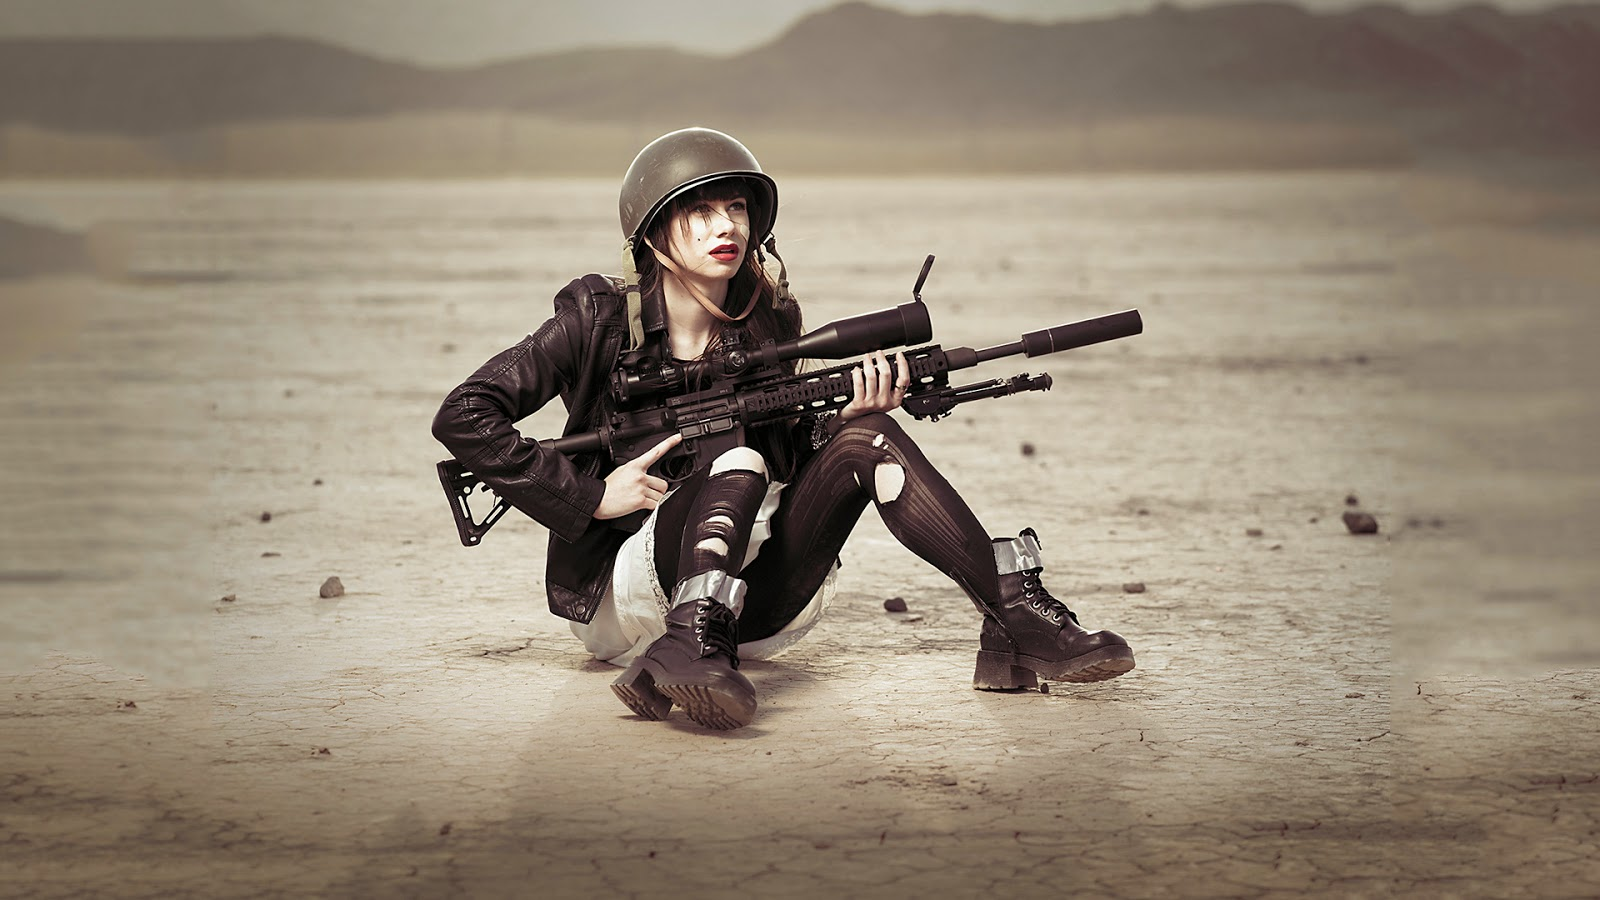 for show sha Women with Remington XM2010 Sniper Rifle HD Wallpaper 1600x900